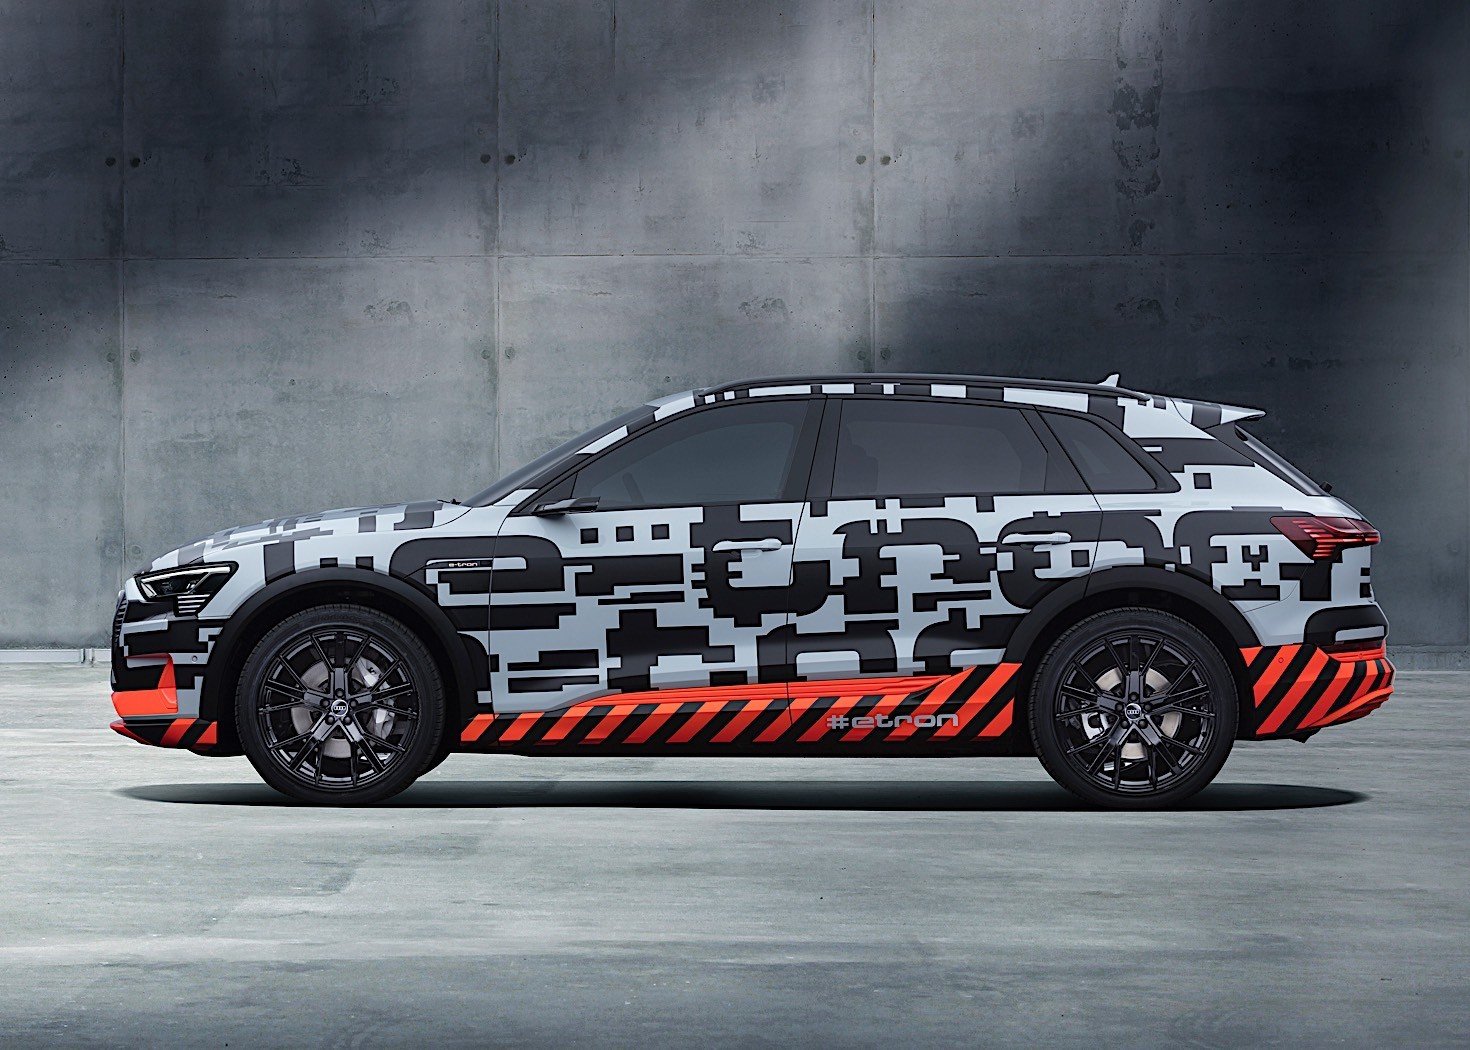 Audi e-tron Electric SUV Starting Price Revealed, Should